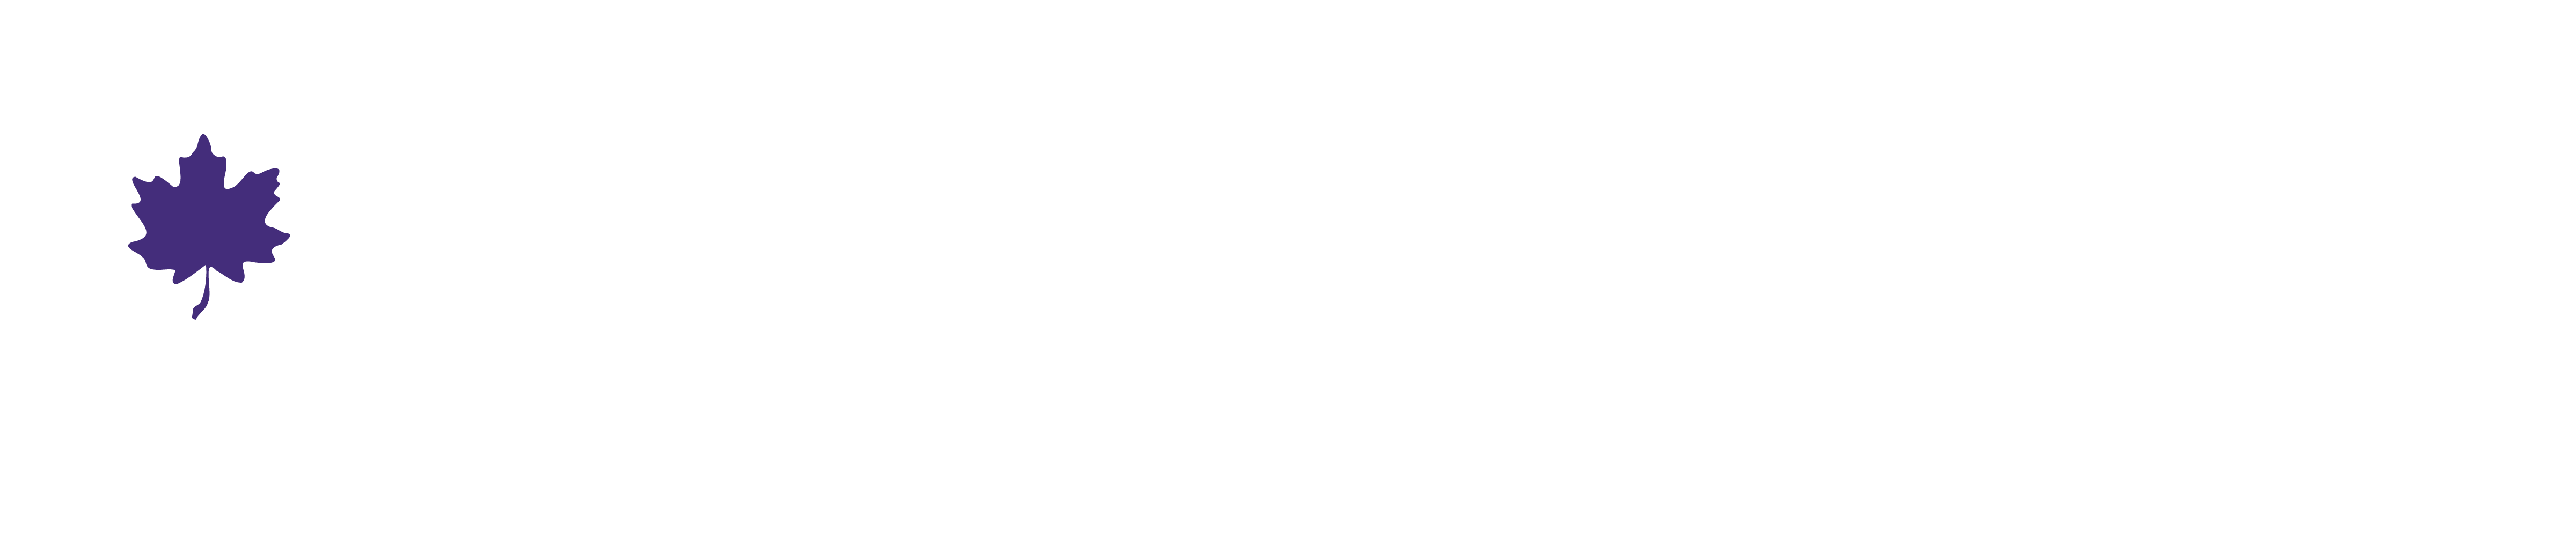 peoples_party_logo